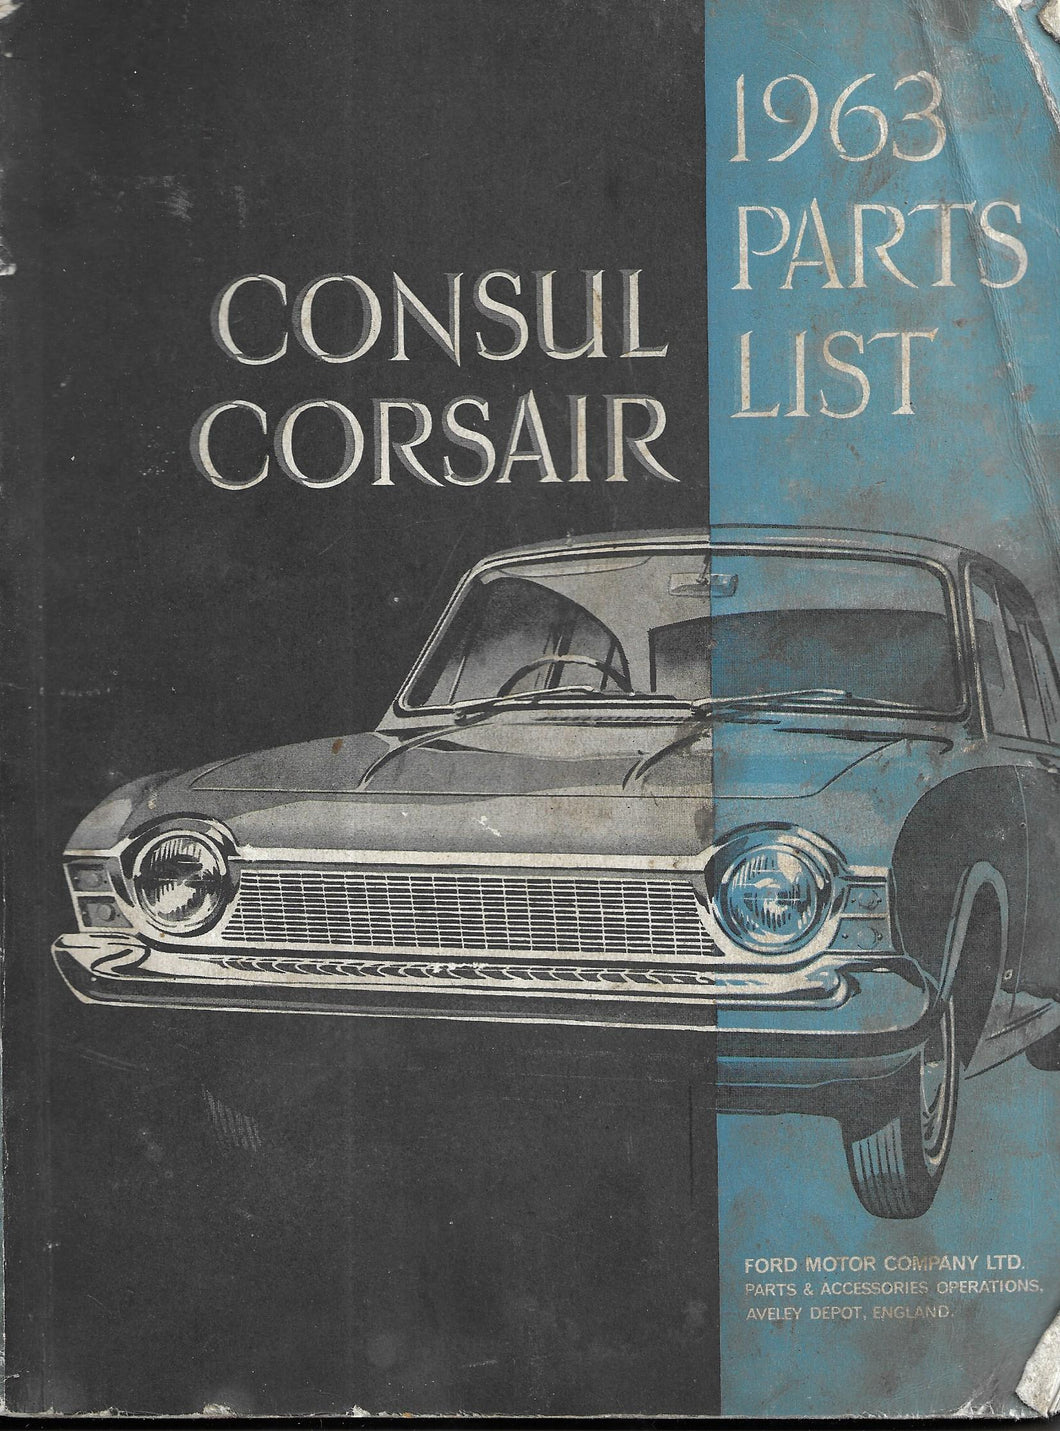 PARTS LIST with illustrations for the CONSUL CORSAIR 1963 [Paperback] No author